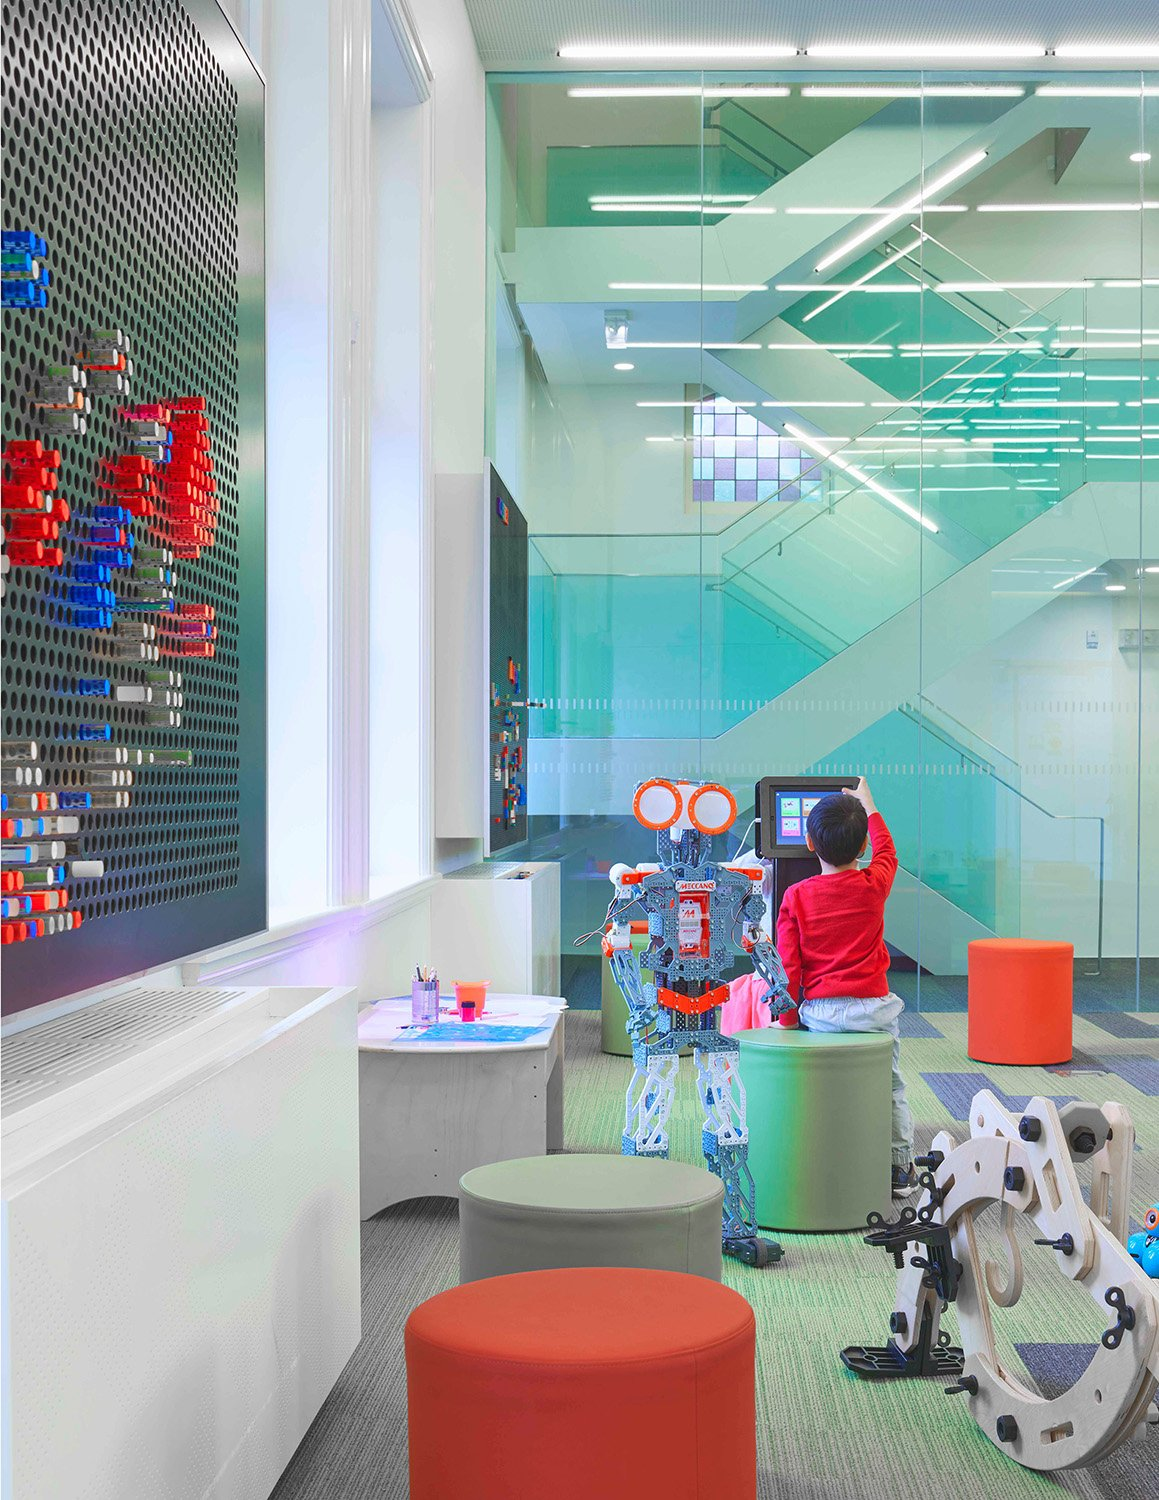 The children's Discovery Centre is equipped with smart tables, touch-screen tablets and robot building kits. A glazed staircase leads to the Makerspace studio above. Tom Arban